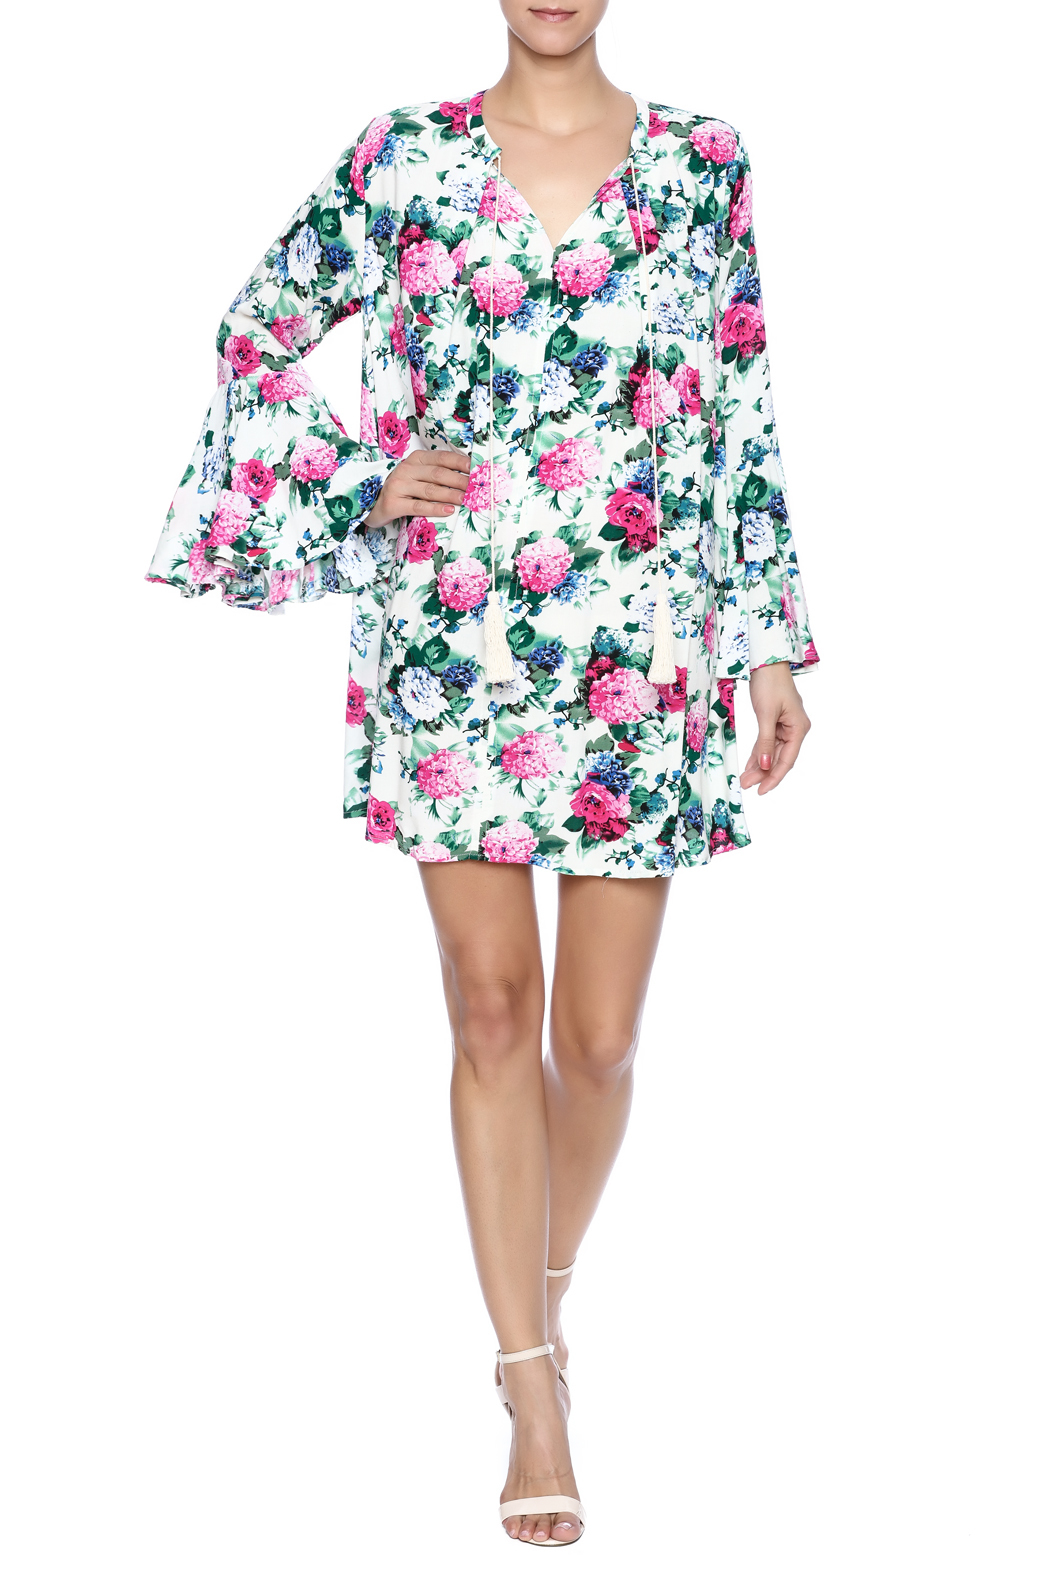 Umgee USA Floral Dress - Front Full Image